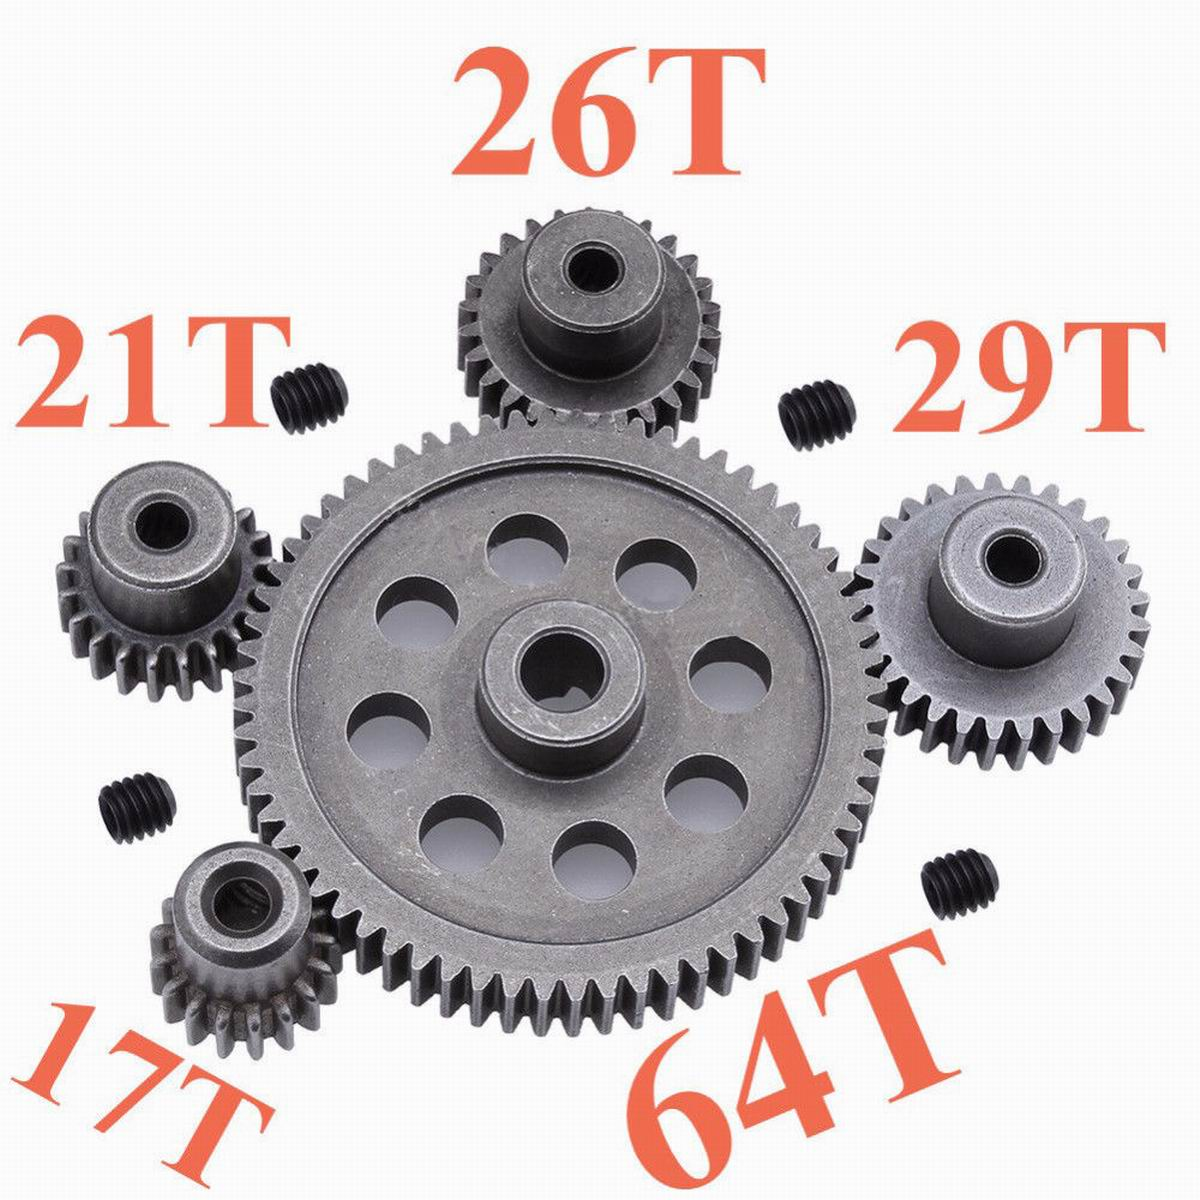 11184 Steel Metal Spur Diff Main Gear 64T Motor Pinion Gears 17T 21T 26T 29T 11189 11176 11181 11119 for RC HSP Redcat RC Truck front gear box housing complete set drive & diff gear for redcat hsp 1 10 rc car parts 02024 02051 02030